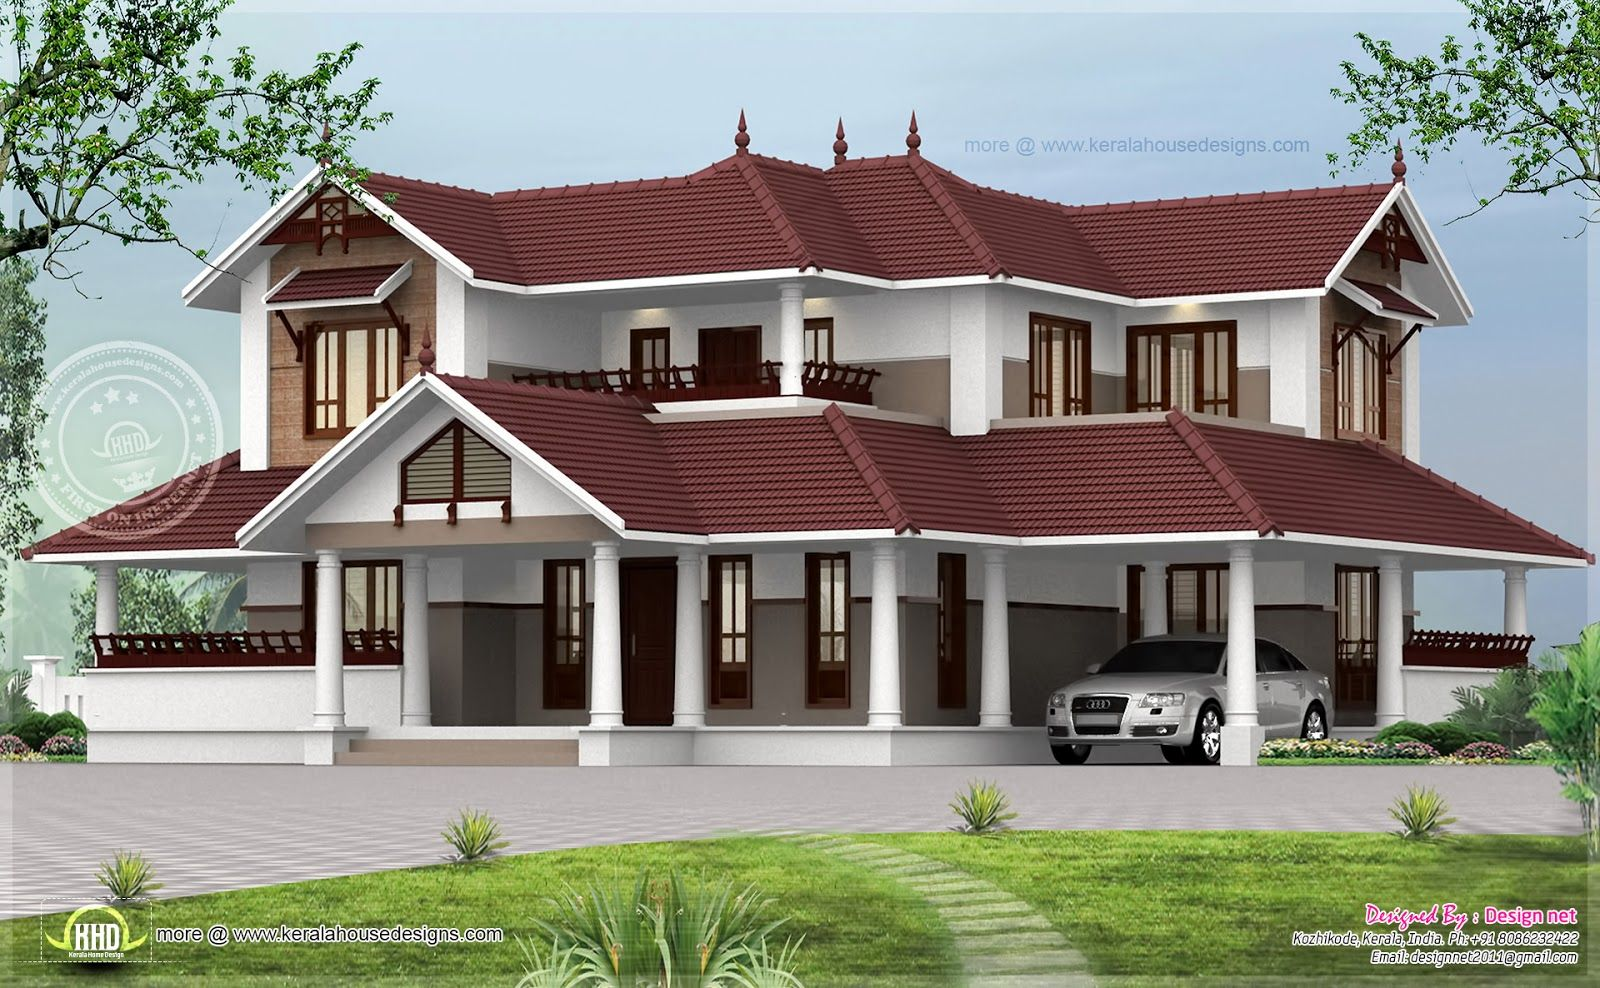 Pictures Of House With Metal Roofs Metal Roof Houses House